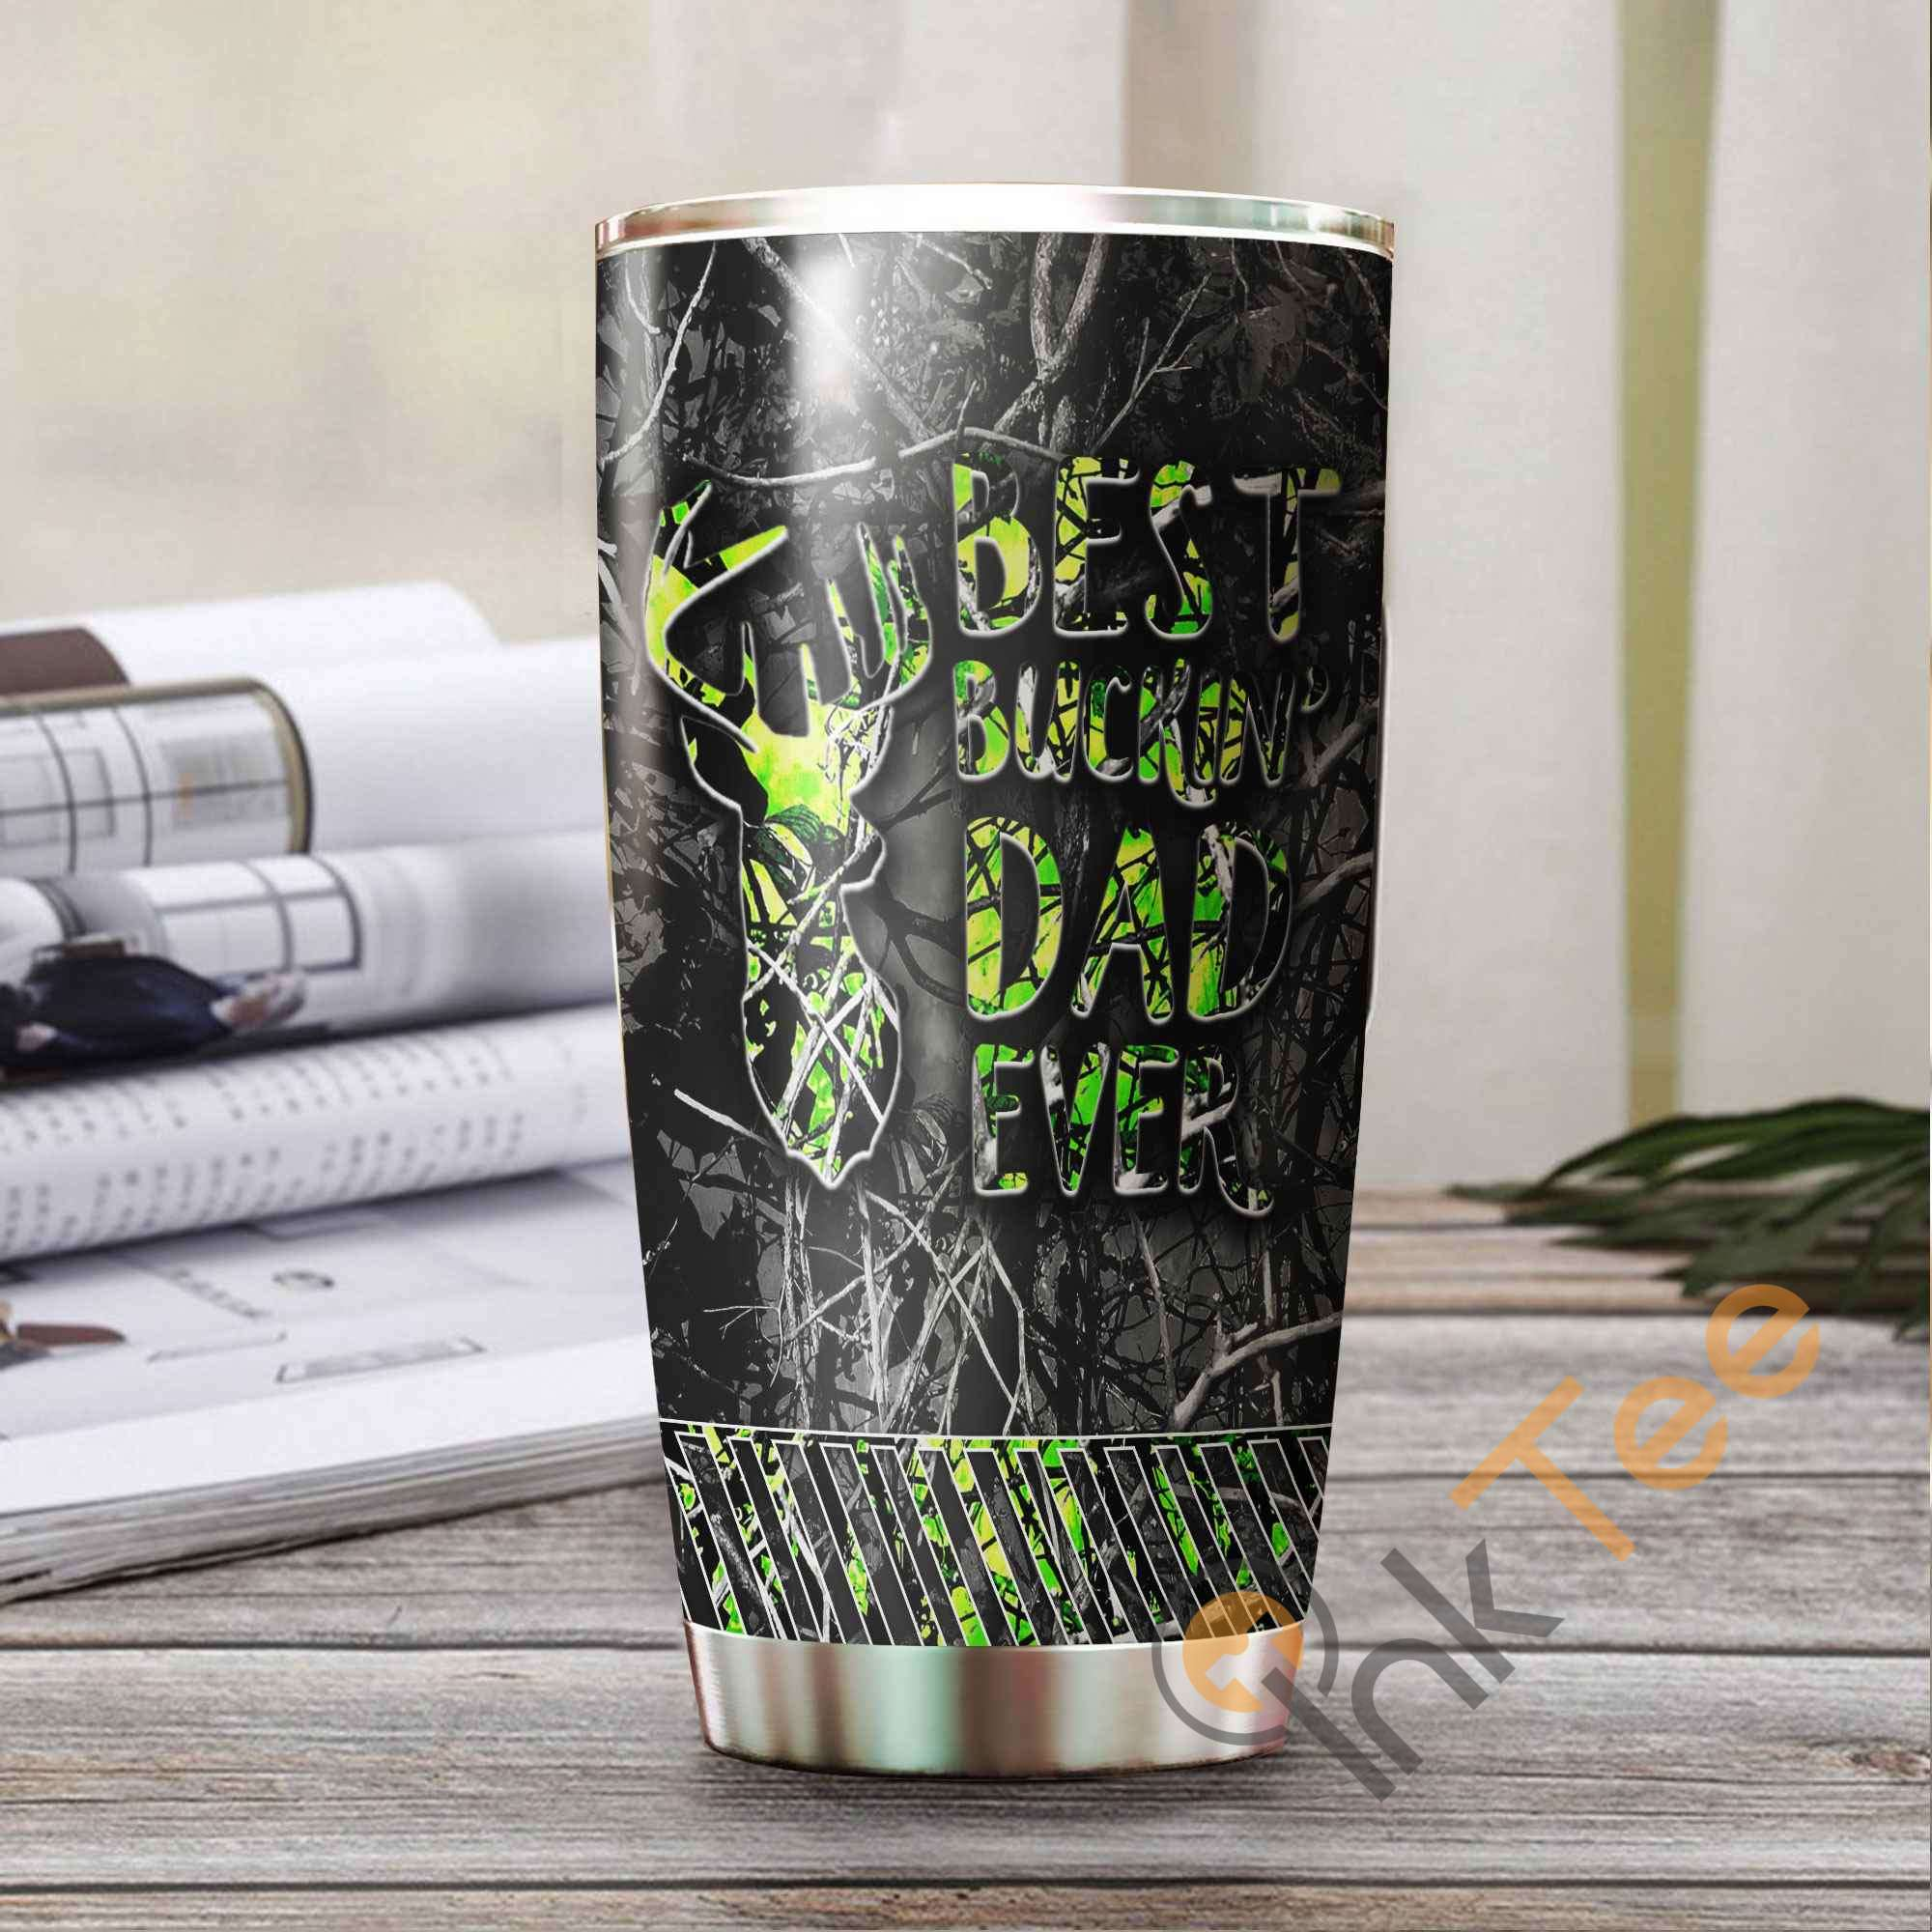 Best Buckin Dad Ever Amazon Best Seller Sku 2867 Stainless Steel Tumbler